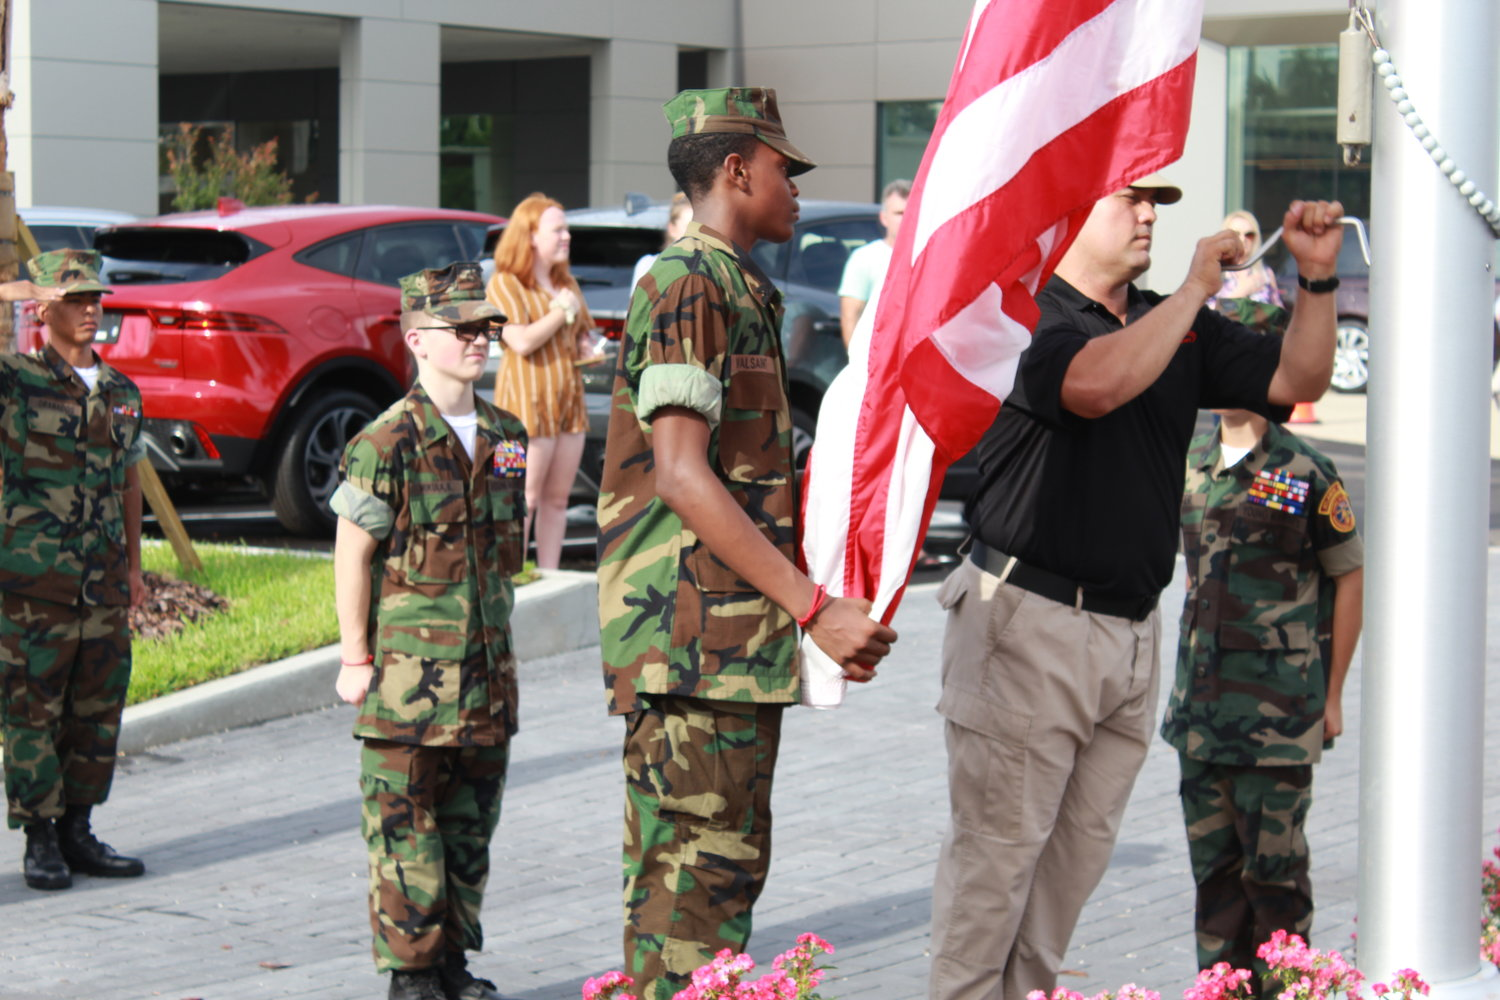 A flag raising ceremony was presented by the Young Marines of Jacksonville.